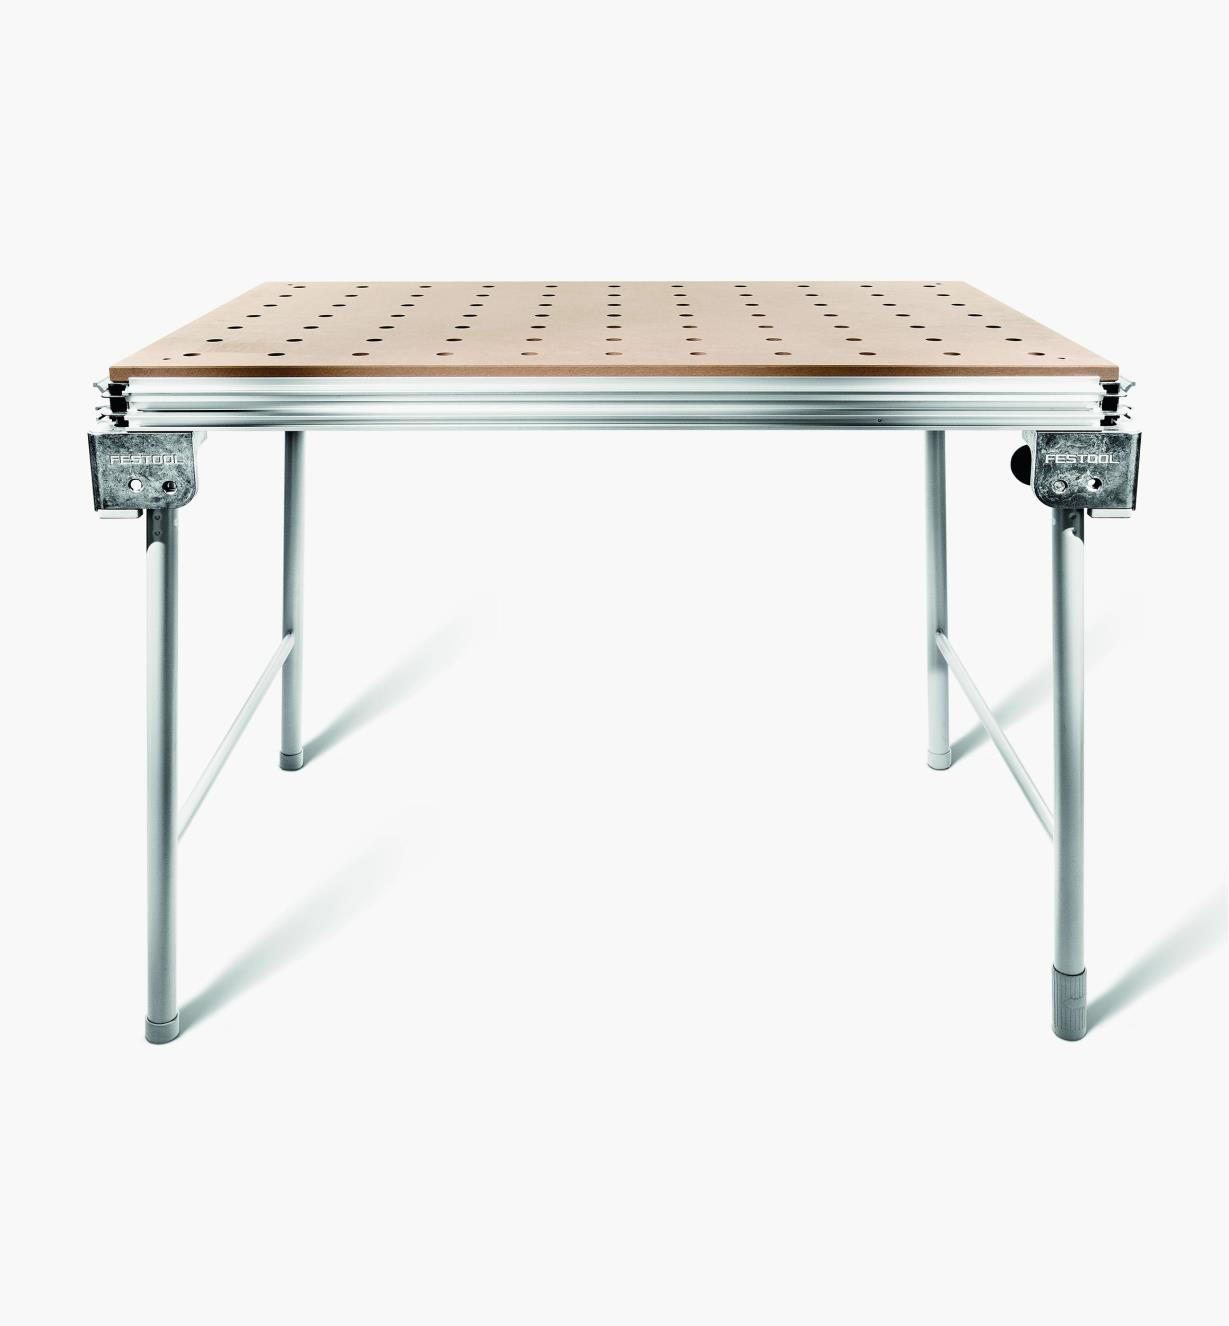 MFT/3 Multifunction Table – Basic